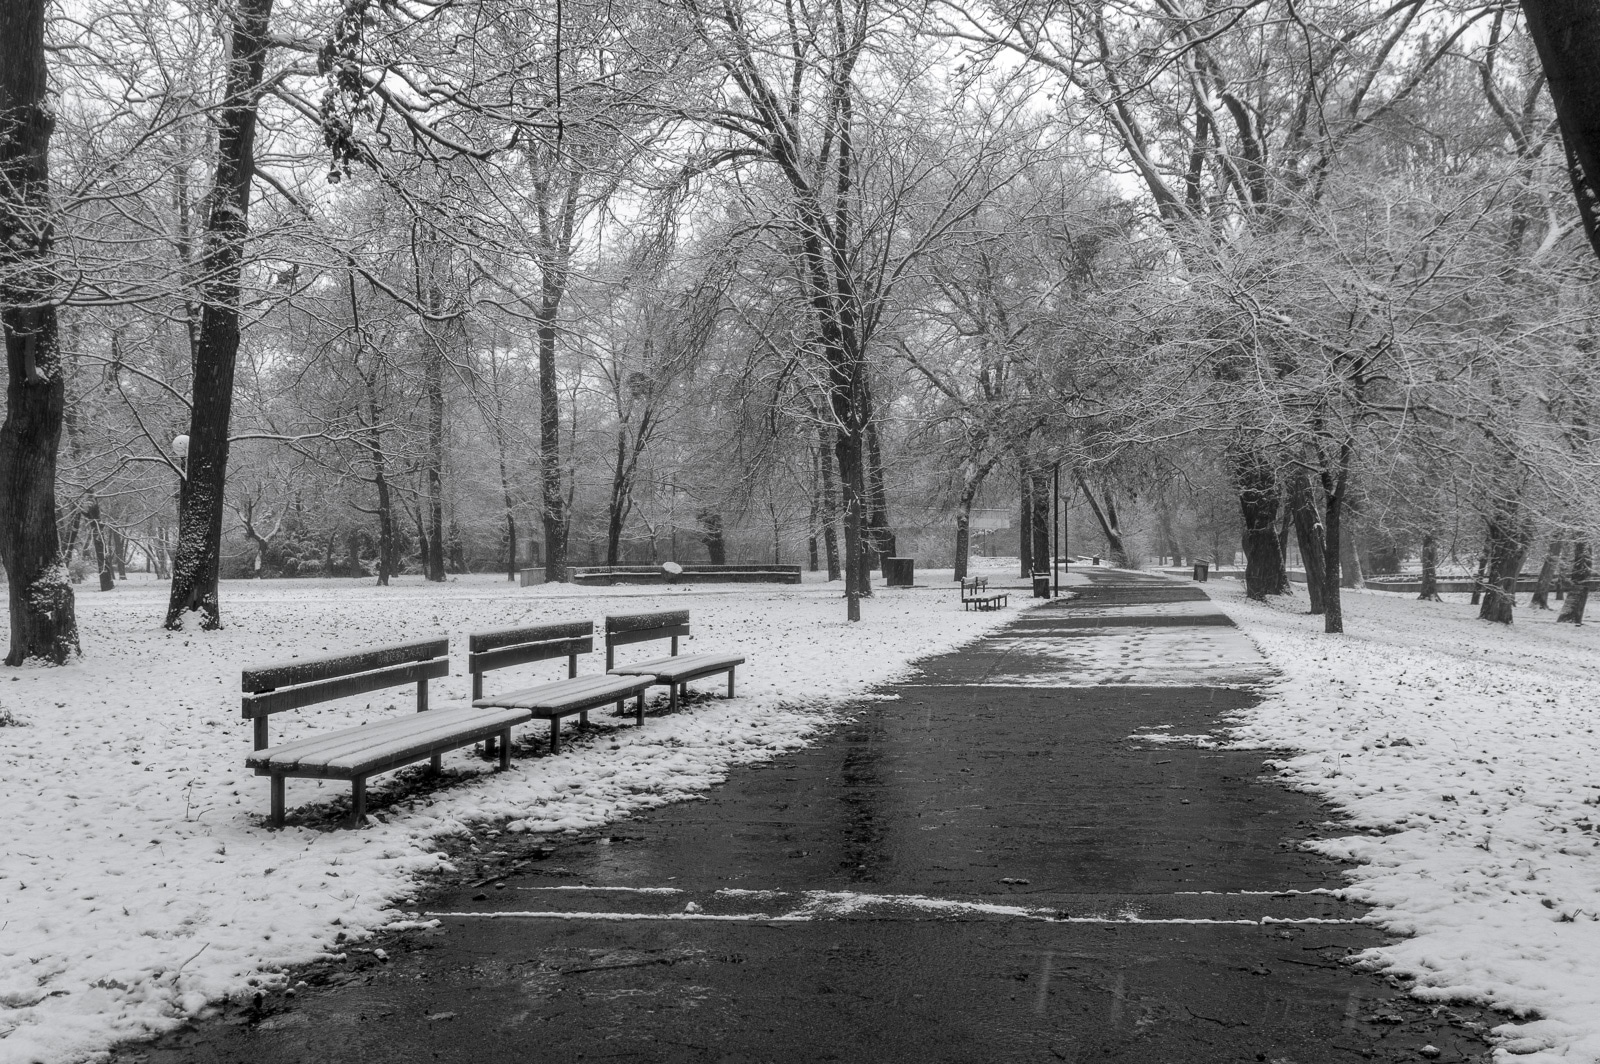 Sad Janka Krala park in Bratislava covered in the first snow of the year